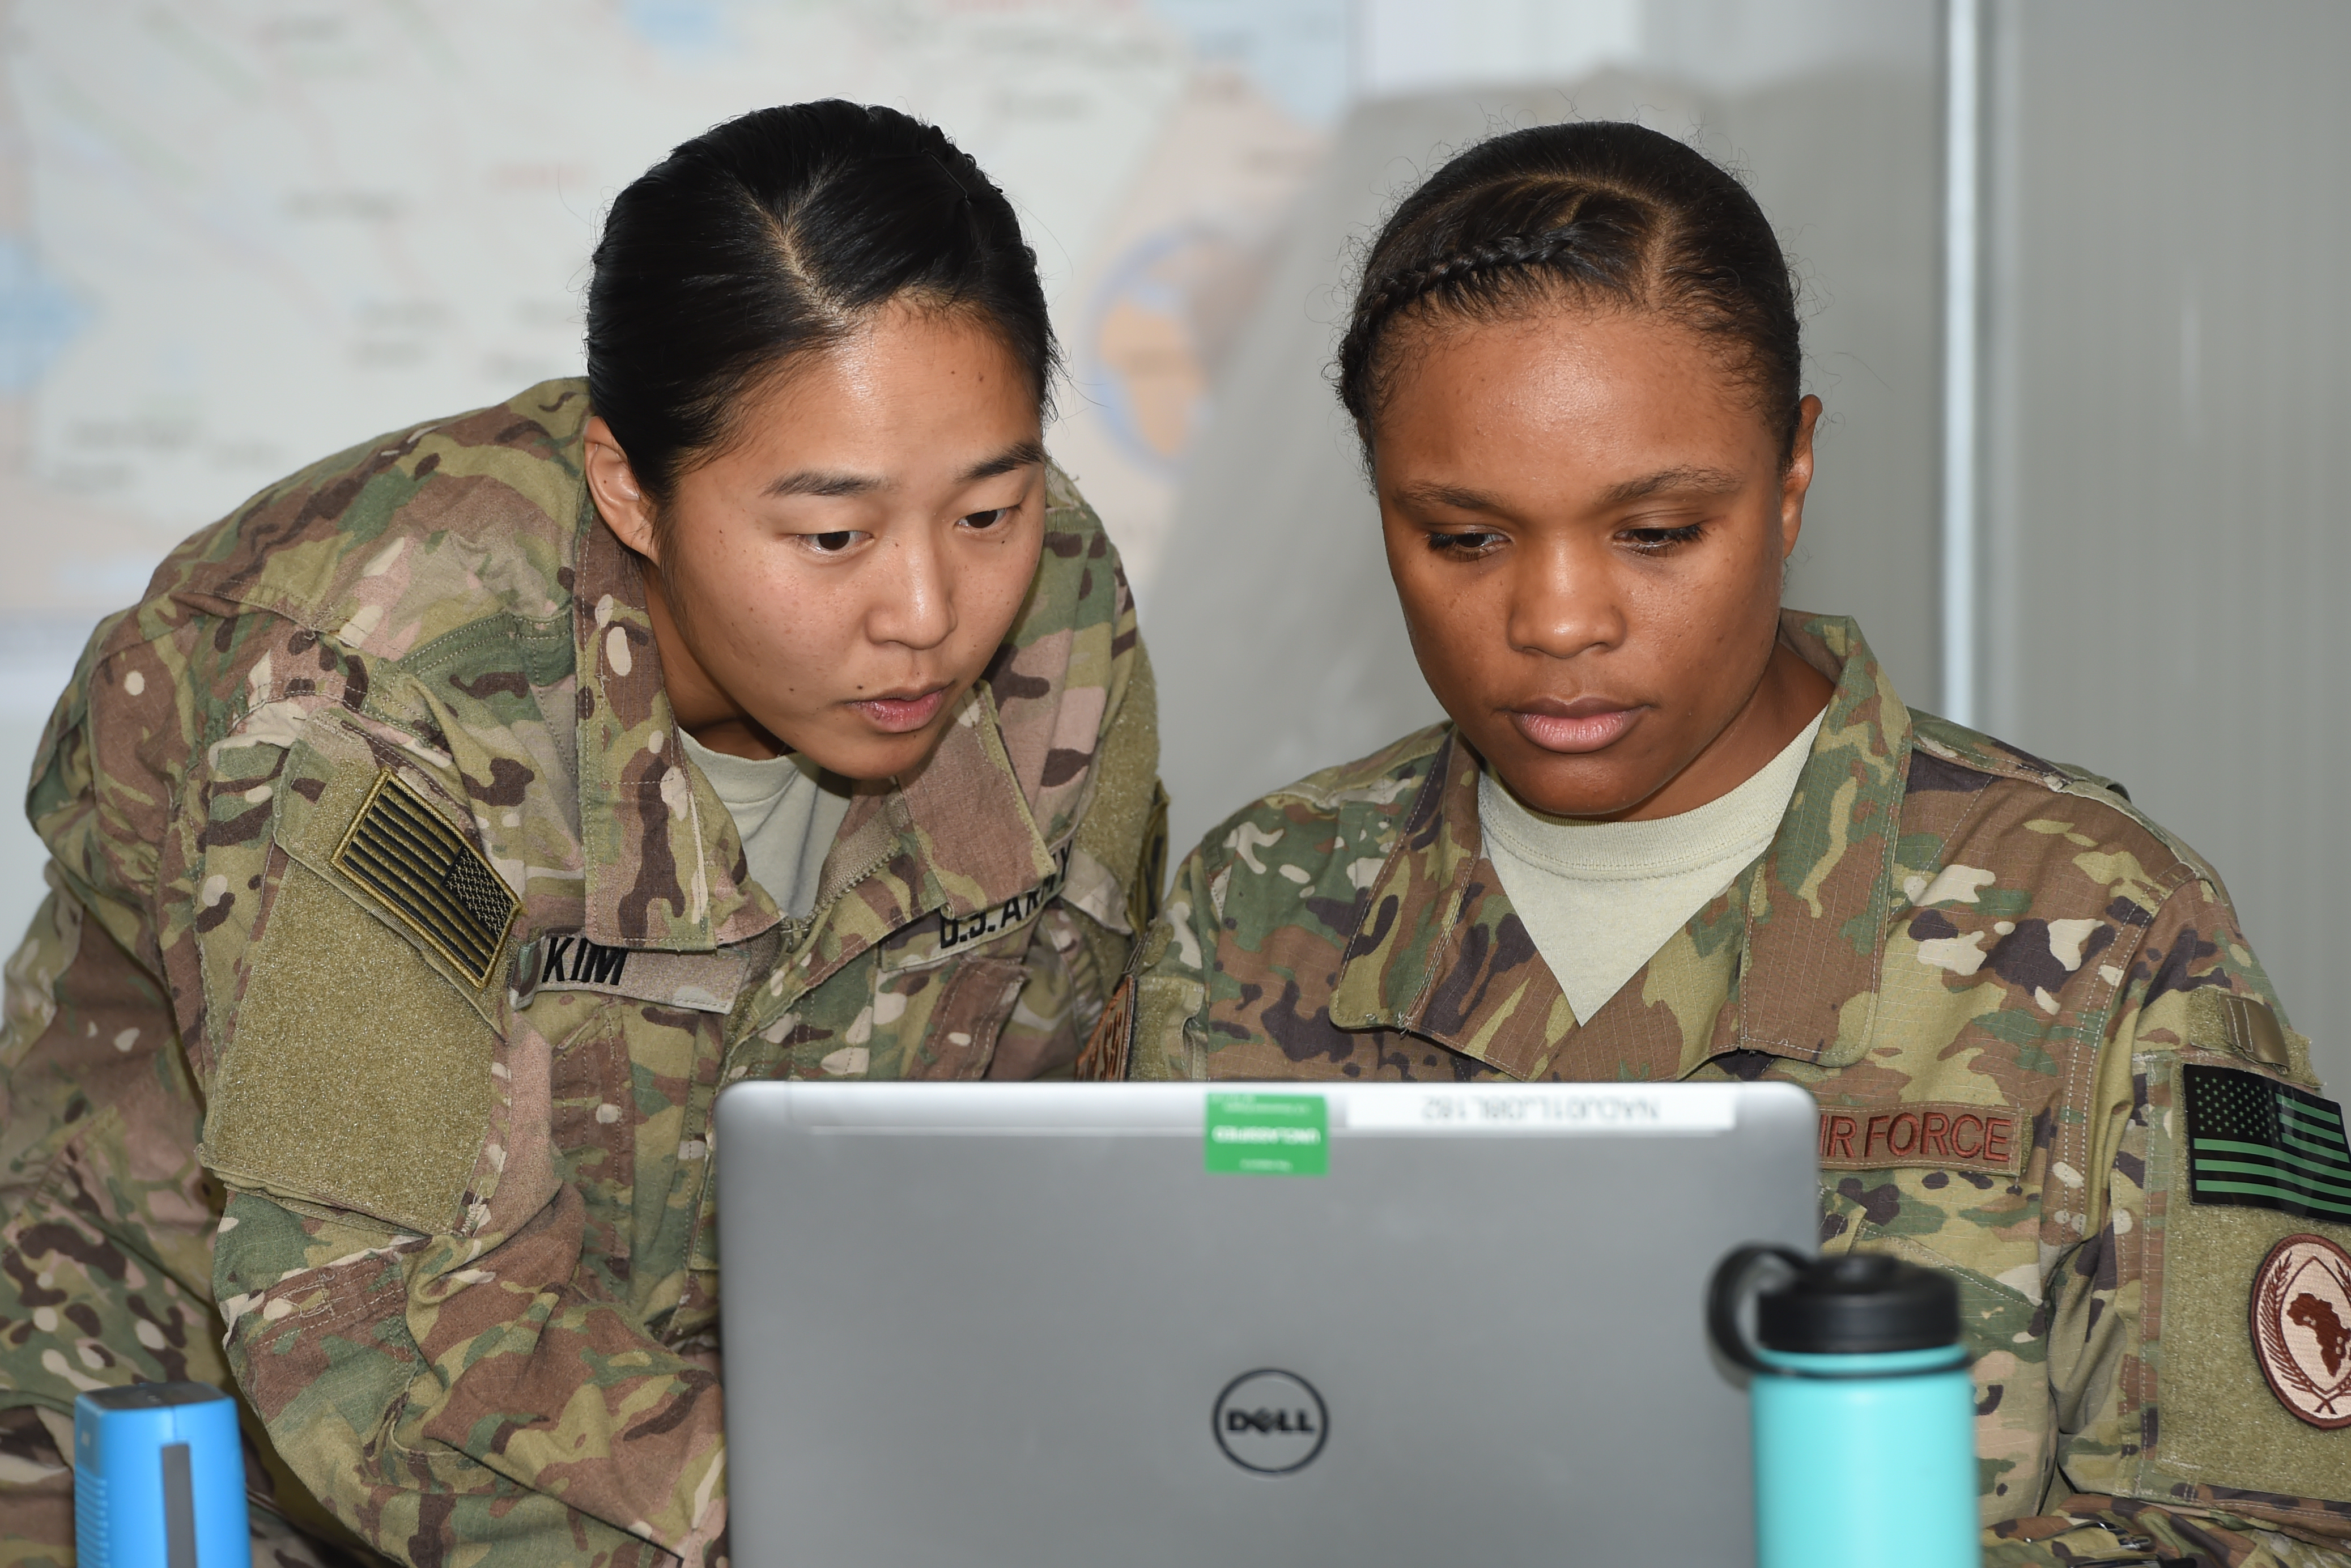 U.S. Army 1st Lt. Elizabeth Kim, officer in charge of environmental health for Camp Lemonnier, confers with U.S. Air Force Tech. Sgt. Pauline Jones, noncommissioned officer in charge of preventative medicine, during a Field Sanitation Team Training course at Camp Lemonnier, Djibouti, Feb. 14, 2017. As course instructors, Kim and Jones taught participating service members field sanitation practices proven to mitigate disease and non-battle related injuries. (U.S. Air National Guard photo by Master Sgt. Paul Gorman)